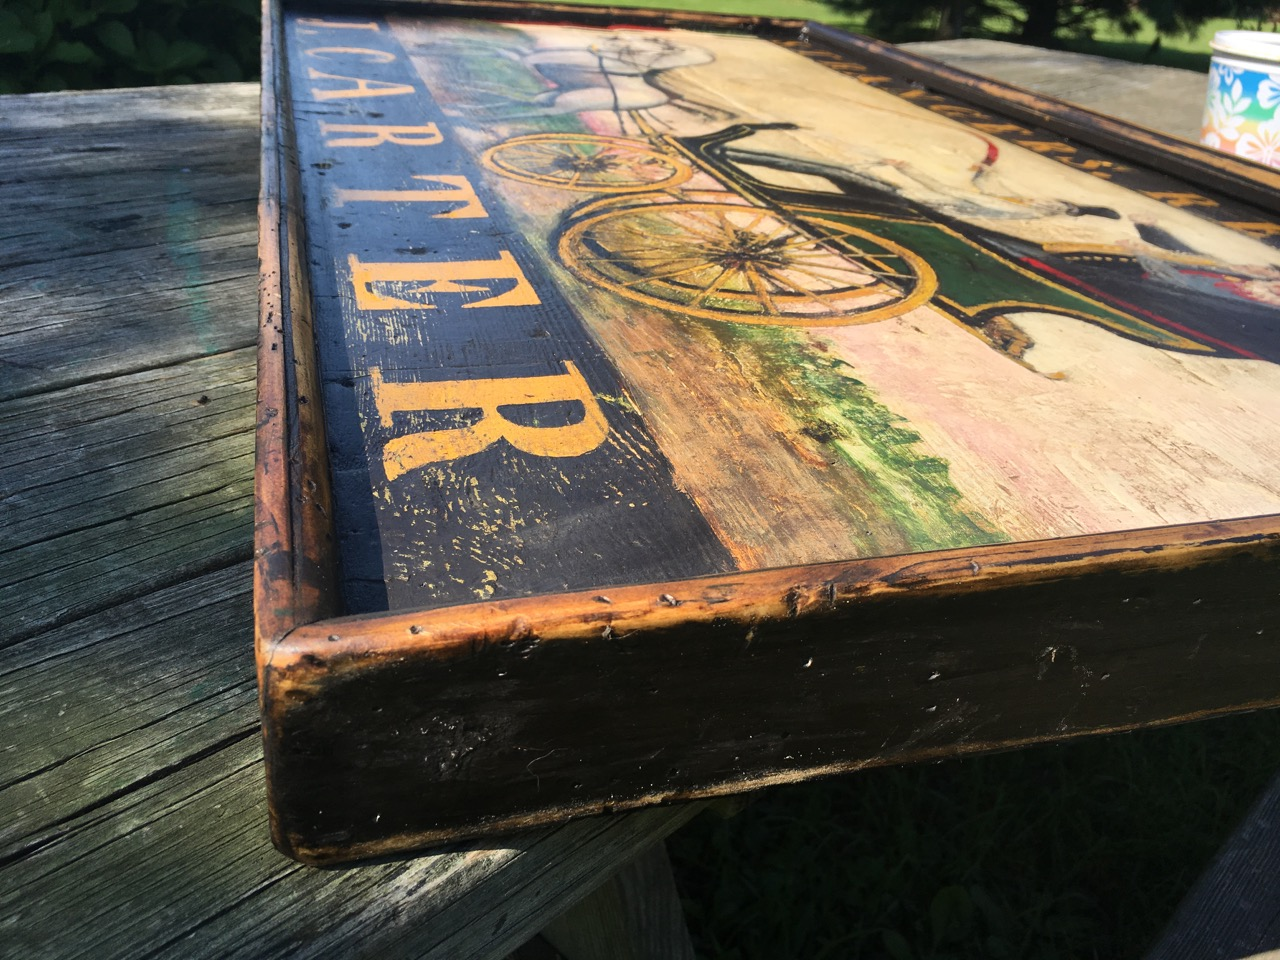 colonial american sign company_jcarter_detail view - 1.jpg